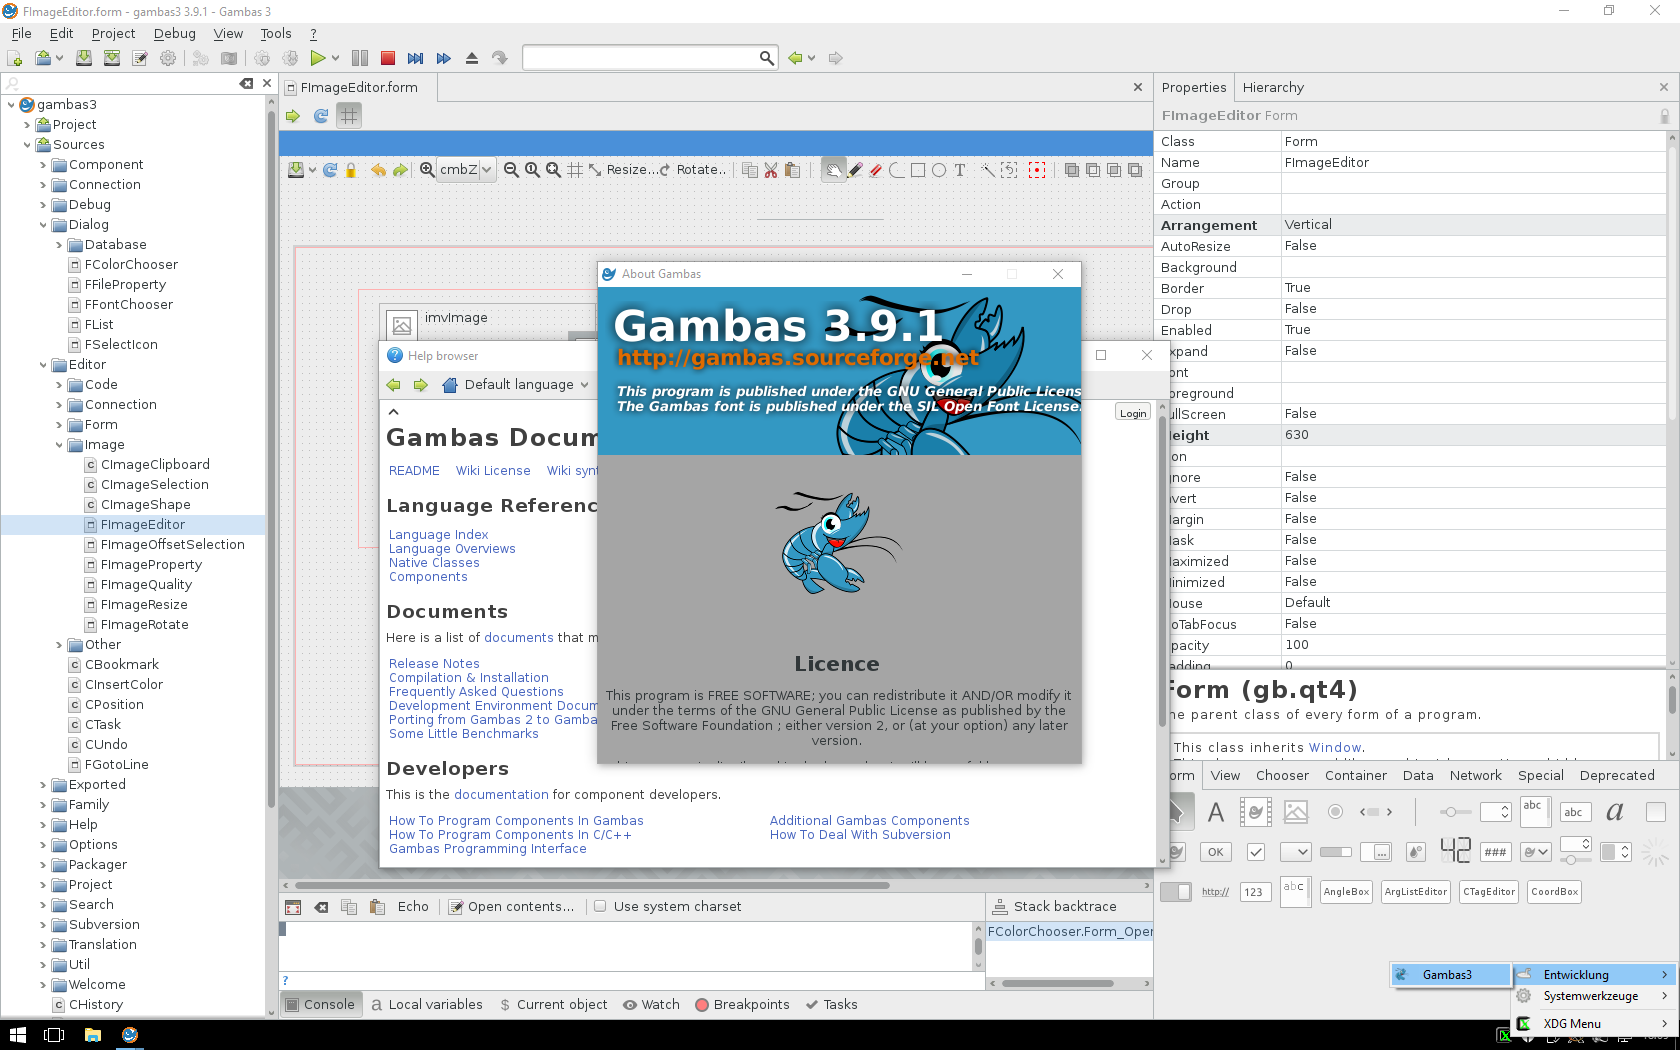 cab40e1d56b doc screenshot - Gambas Documentation